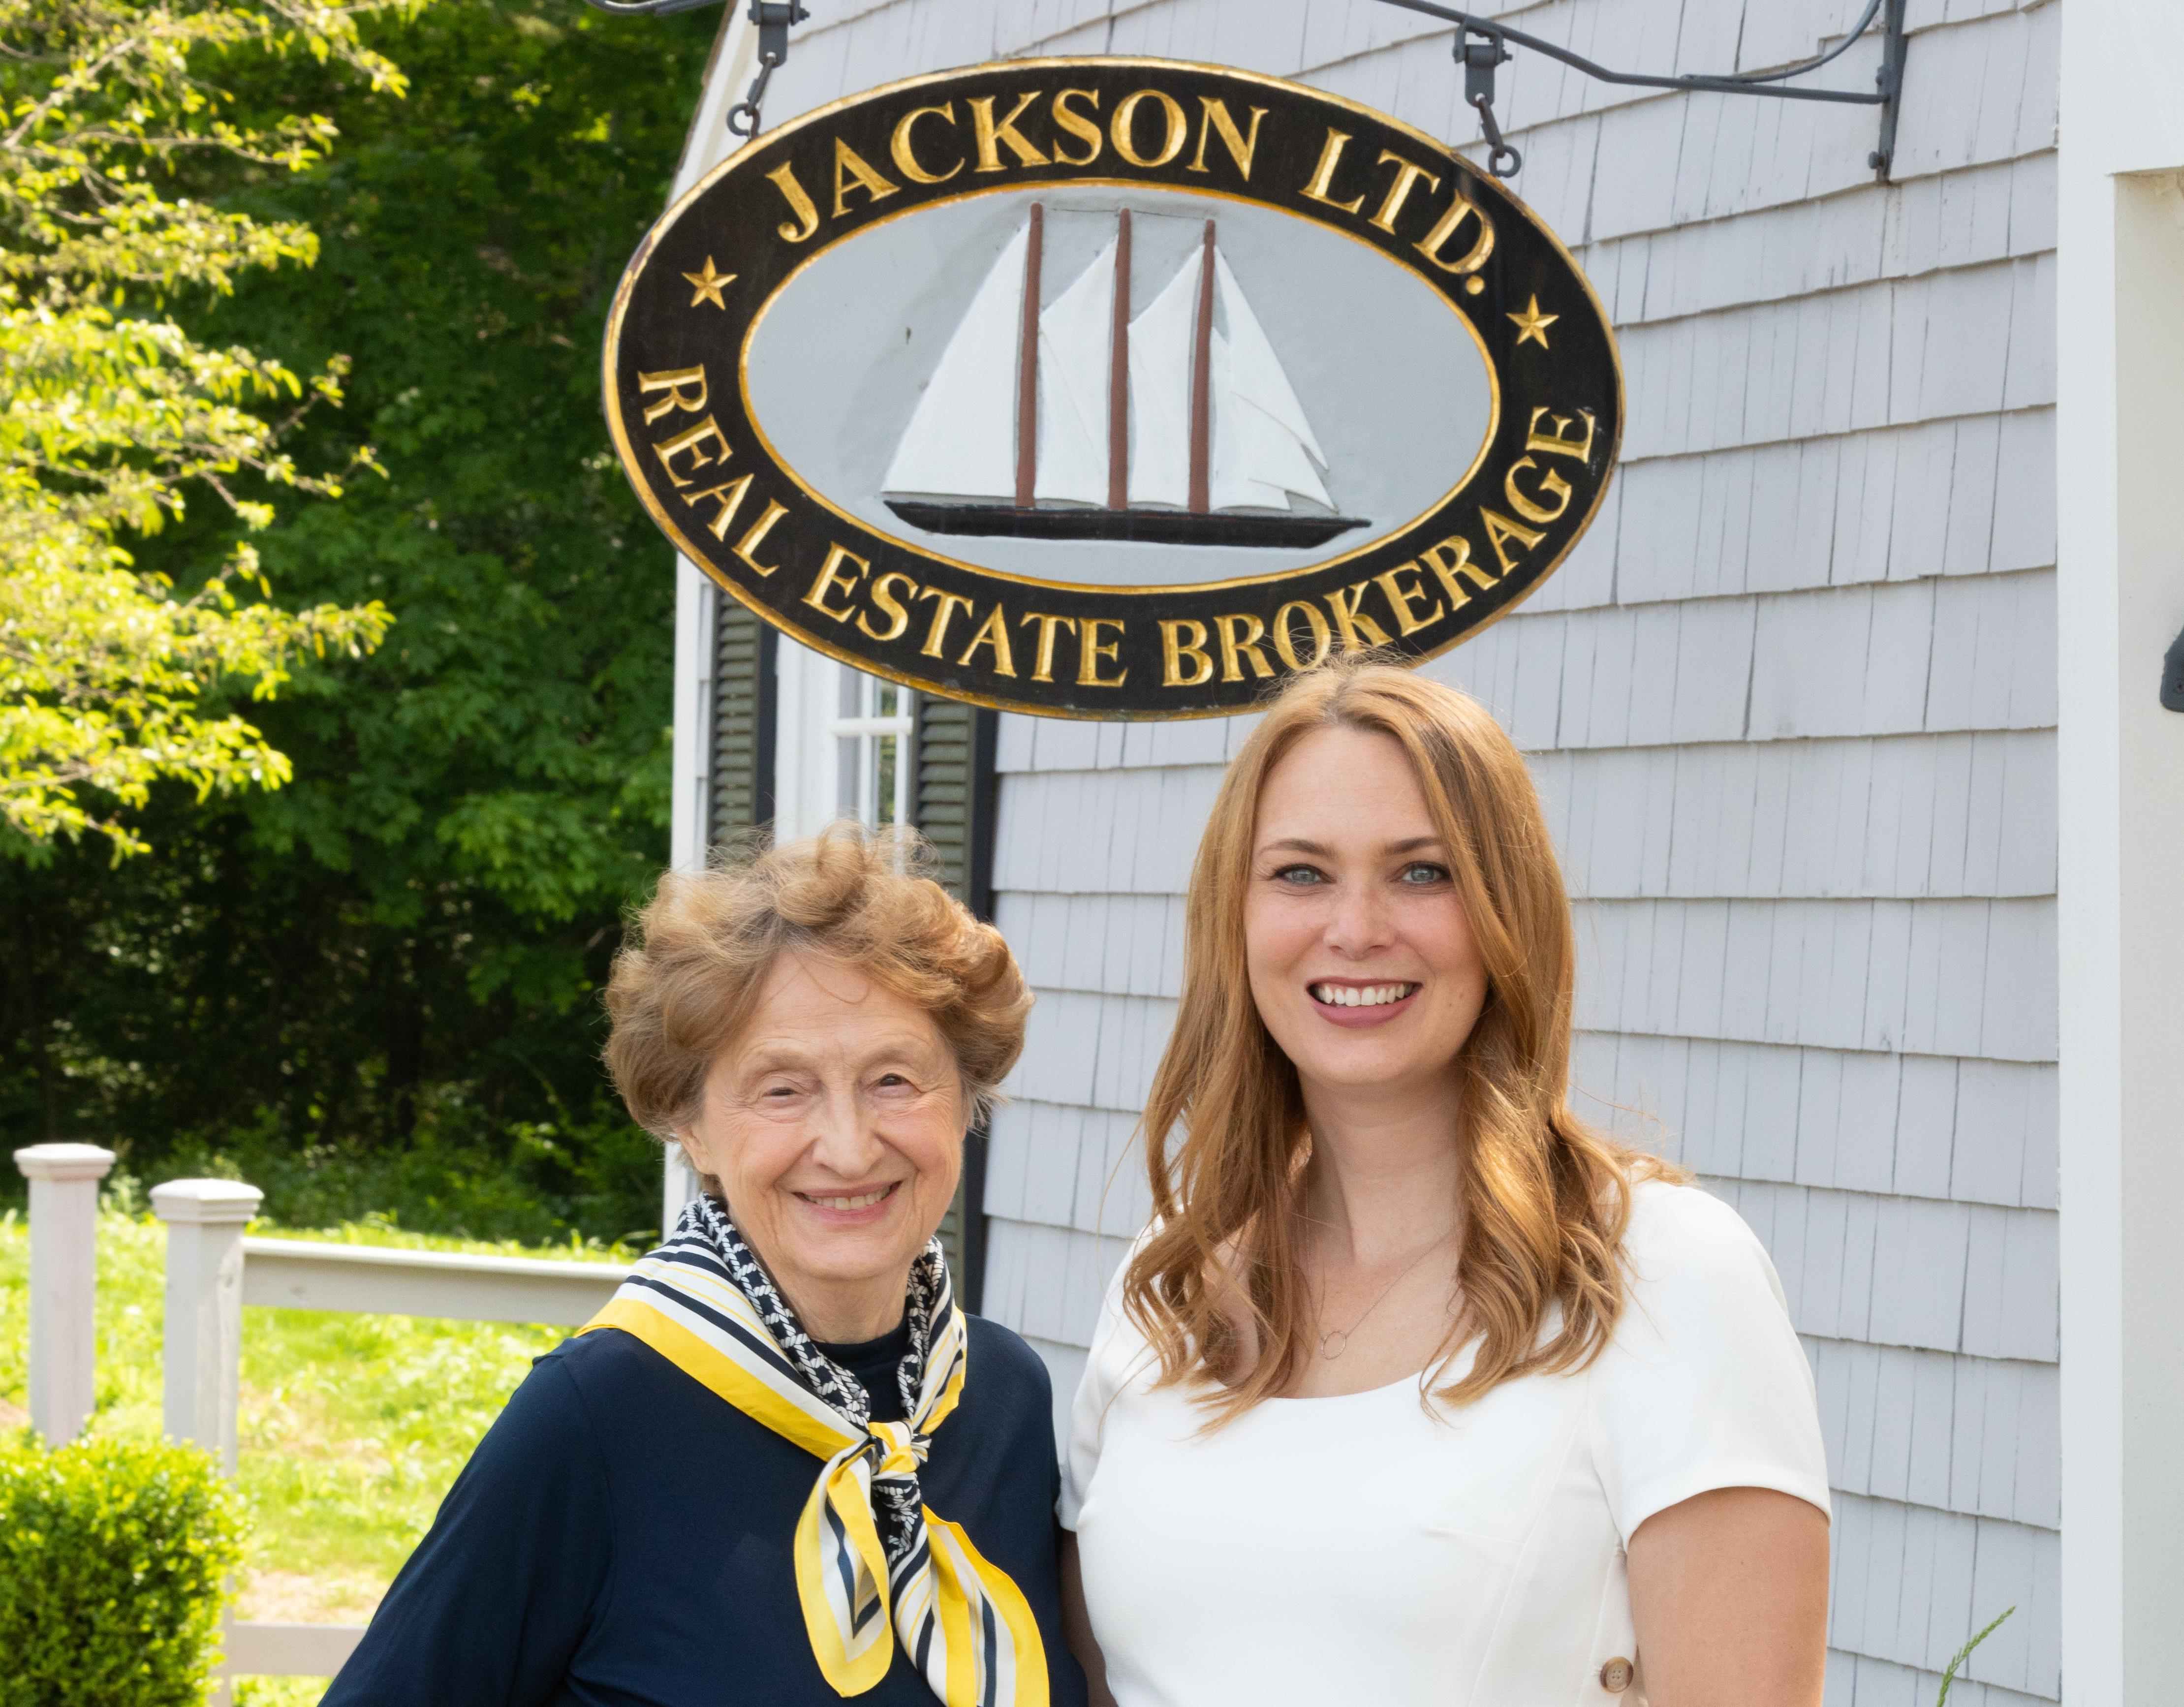 Robert Paul Properties Acquires JACKSON Ltd., expands presence to South Shore